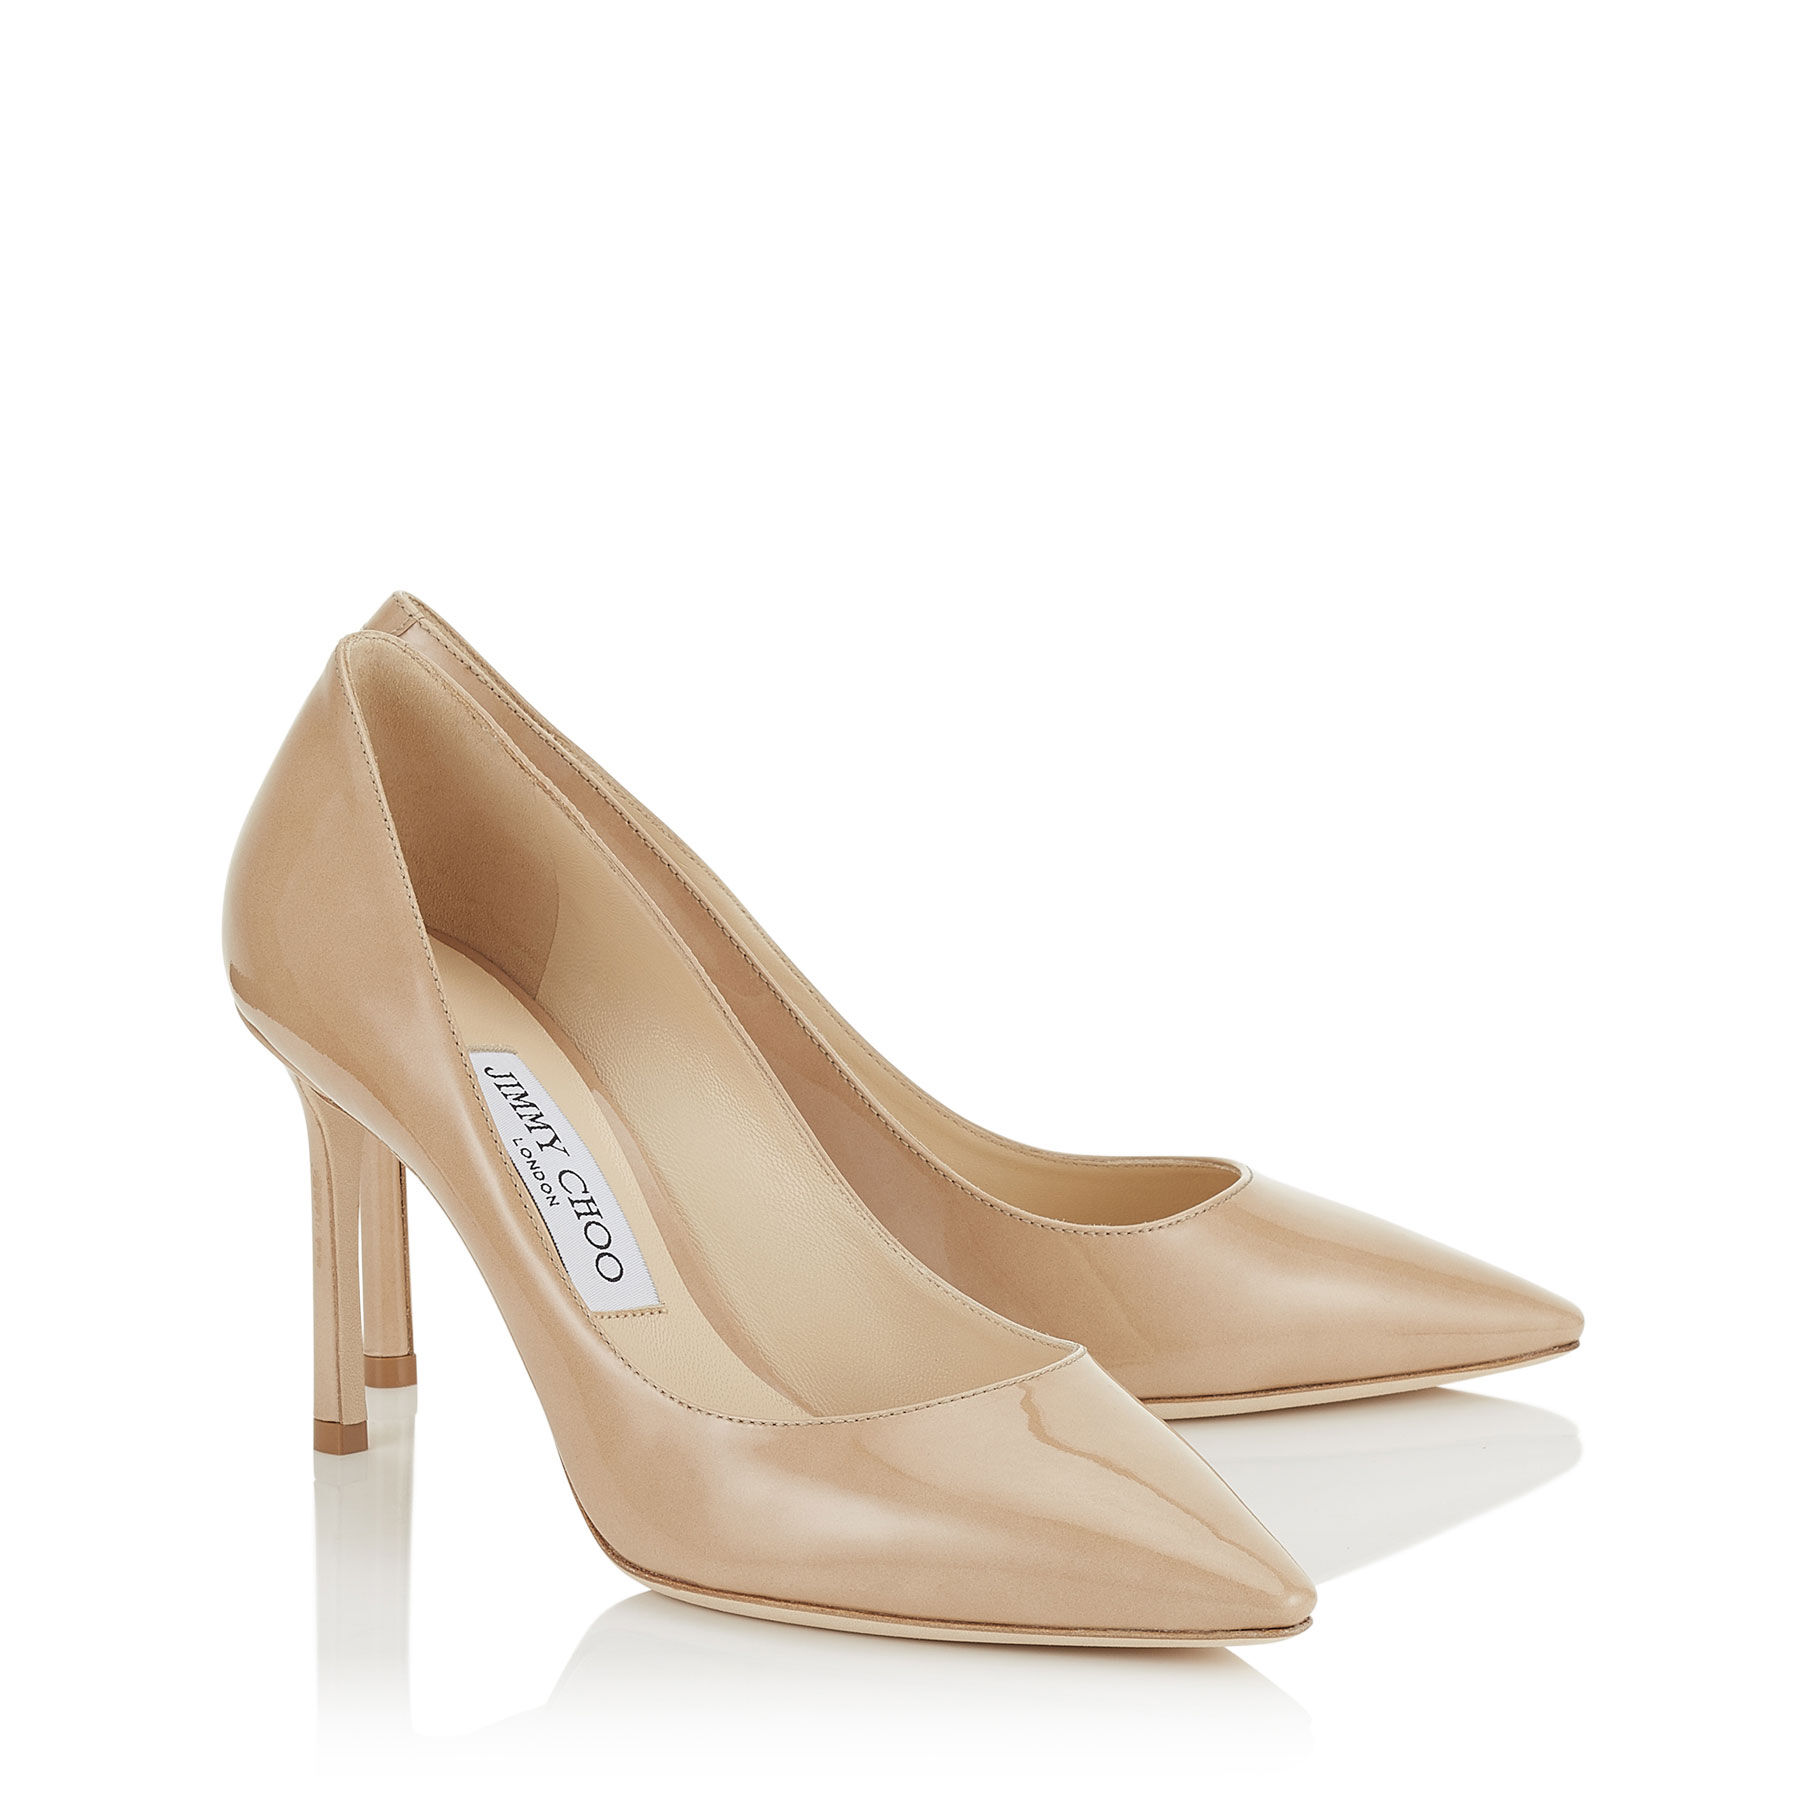 Nude Patent Leather Pointy Toe Pumps